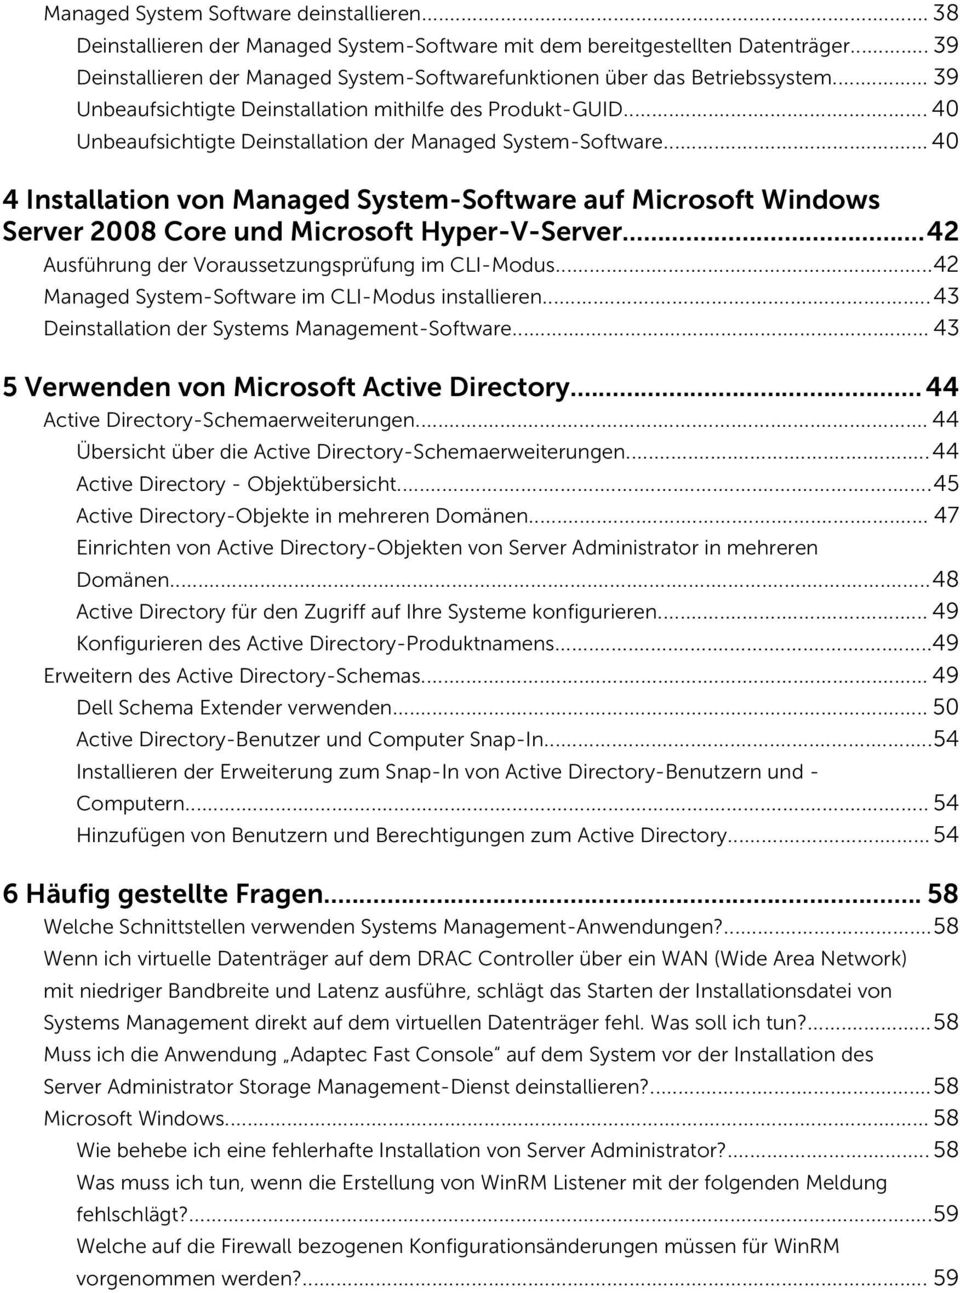 .. 40 Unbeaufsichtigte Deinstallation der Managed System-Software... 40 4 Installation von Managed System-Software auf Microsoft Windows Server 2008 Core und Microsoft Hyper-V-Server.